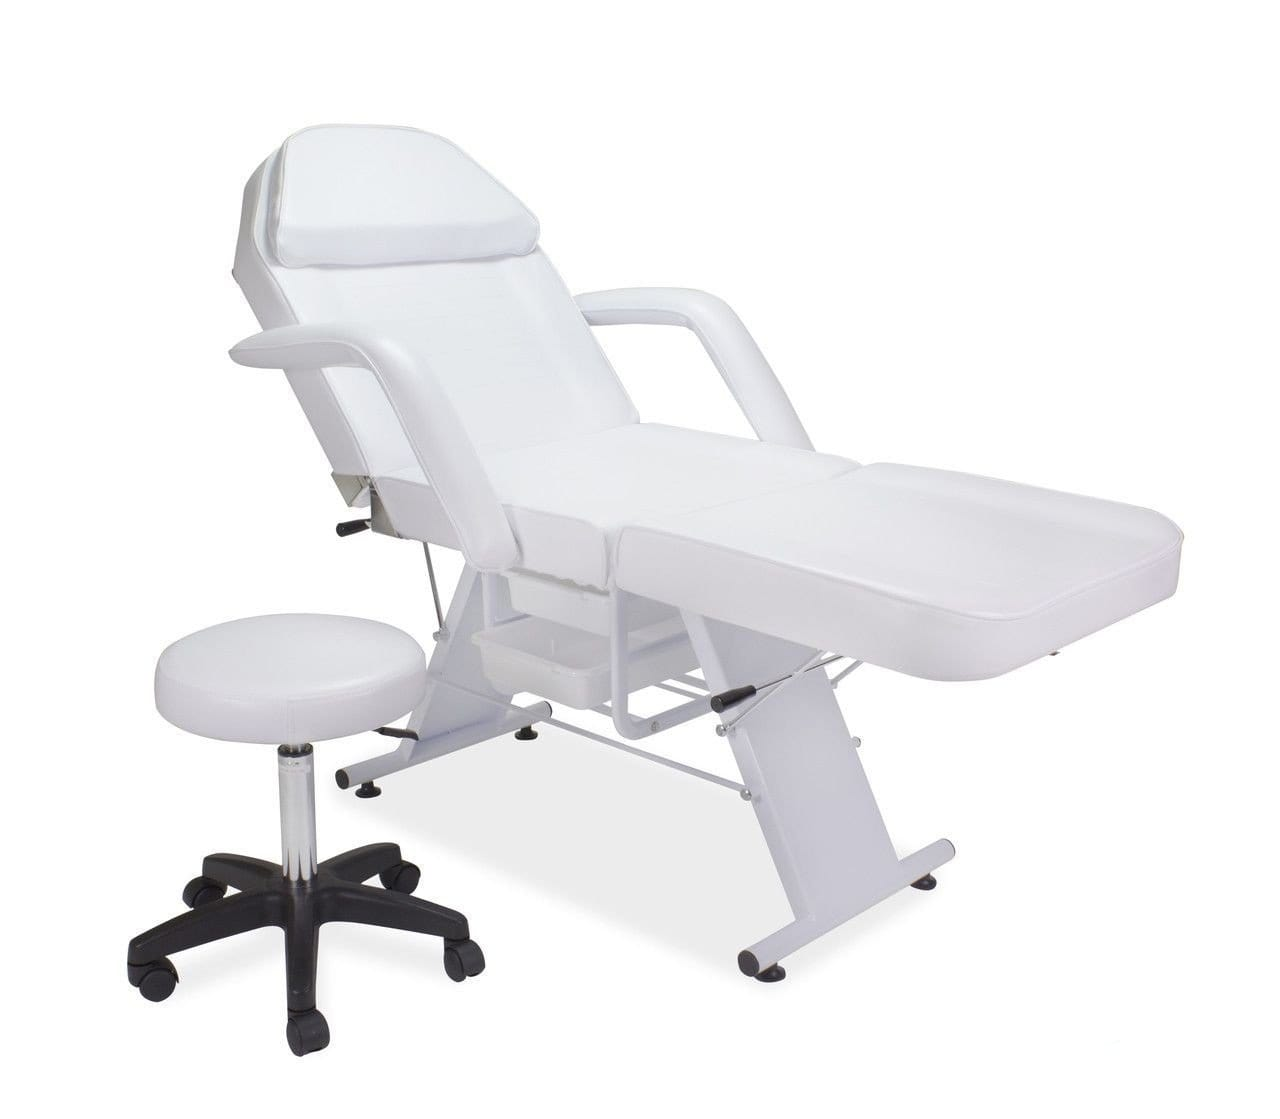 Professional High Quality Beauty Facial Bed With Styling Stool White BS-616